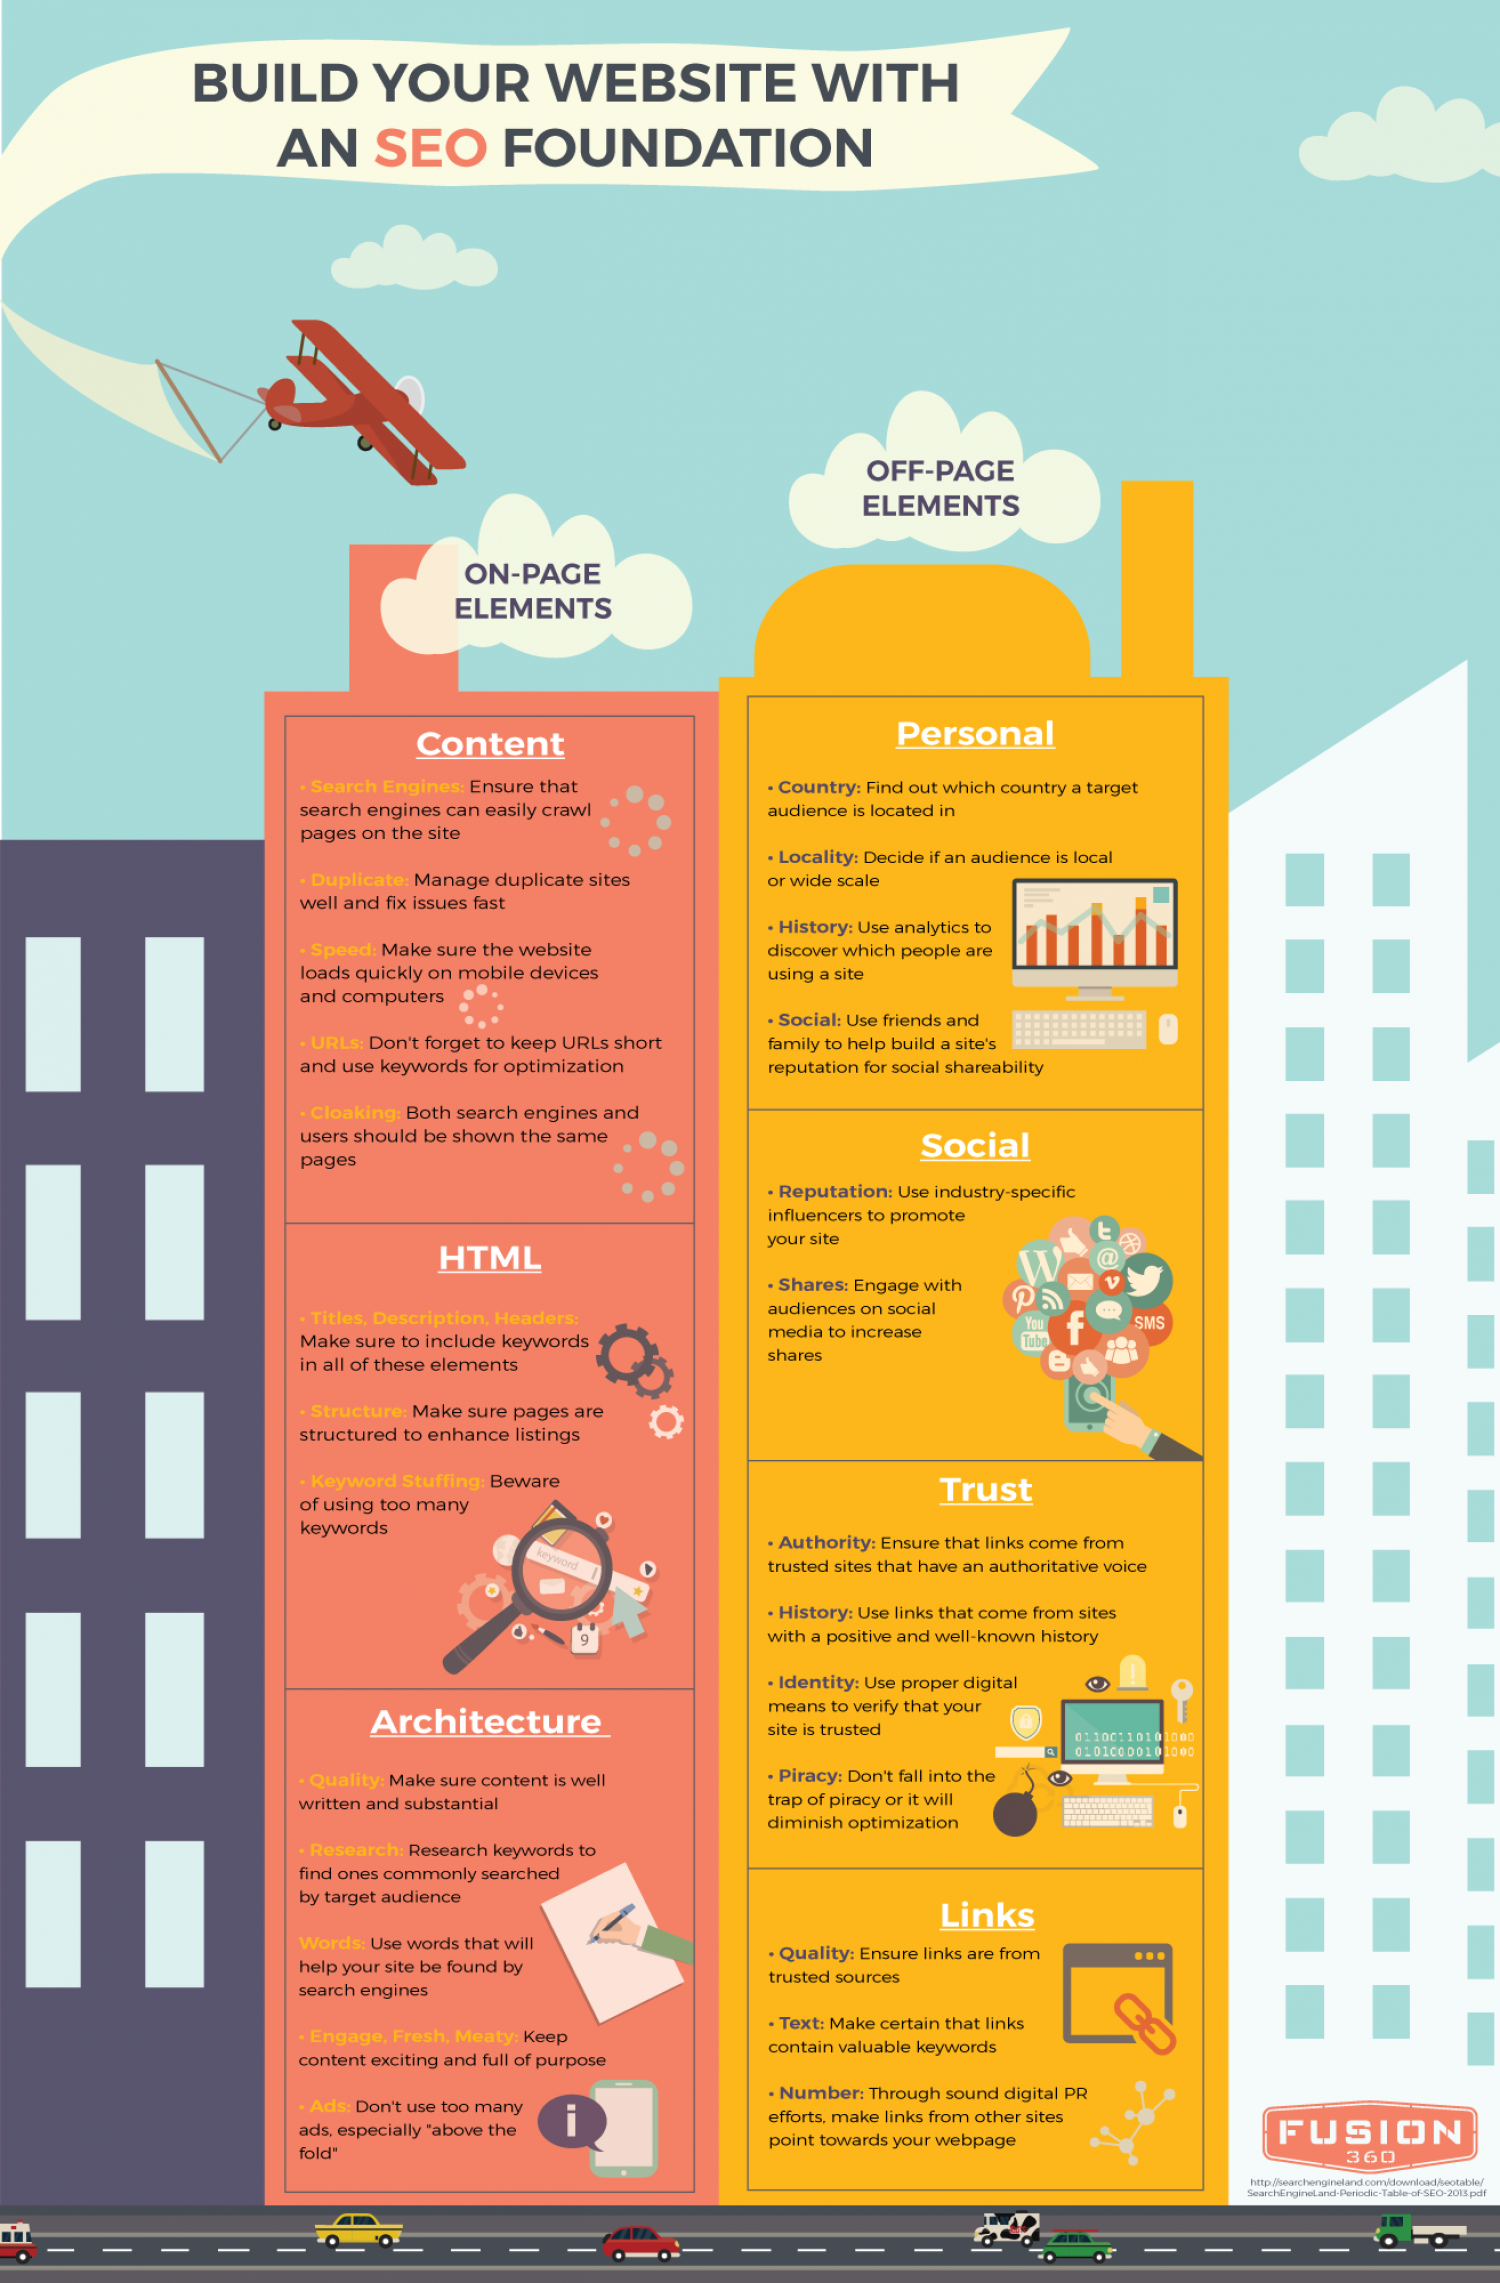 Build Your Website With an SEO Foundation Infographic